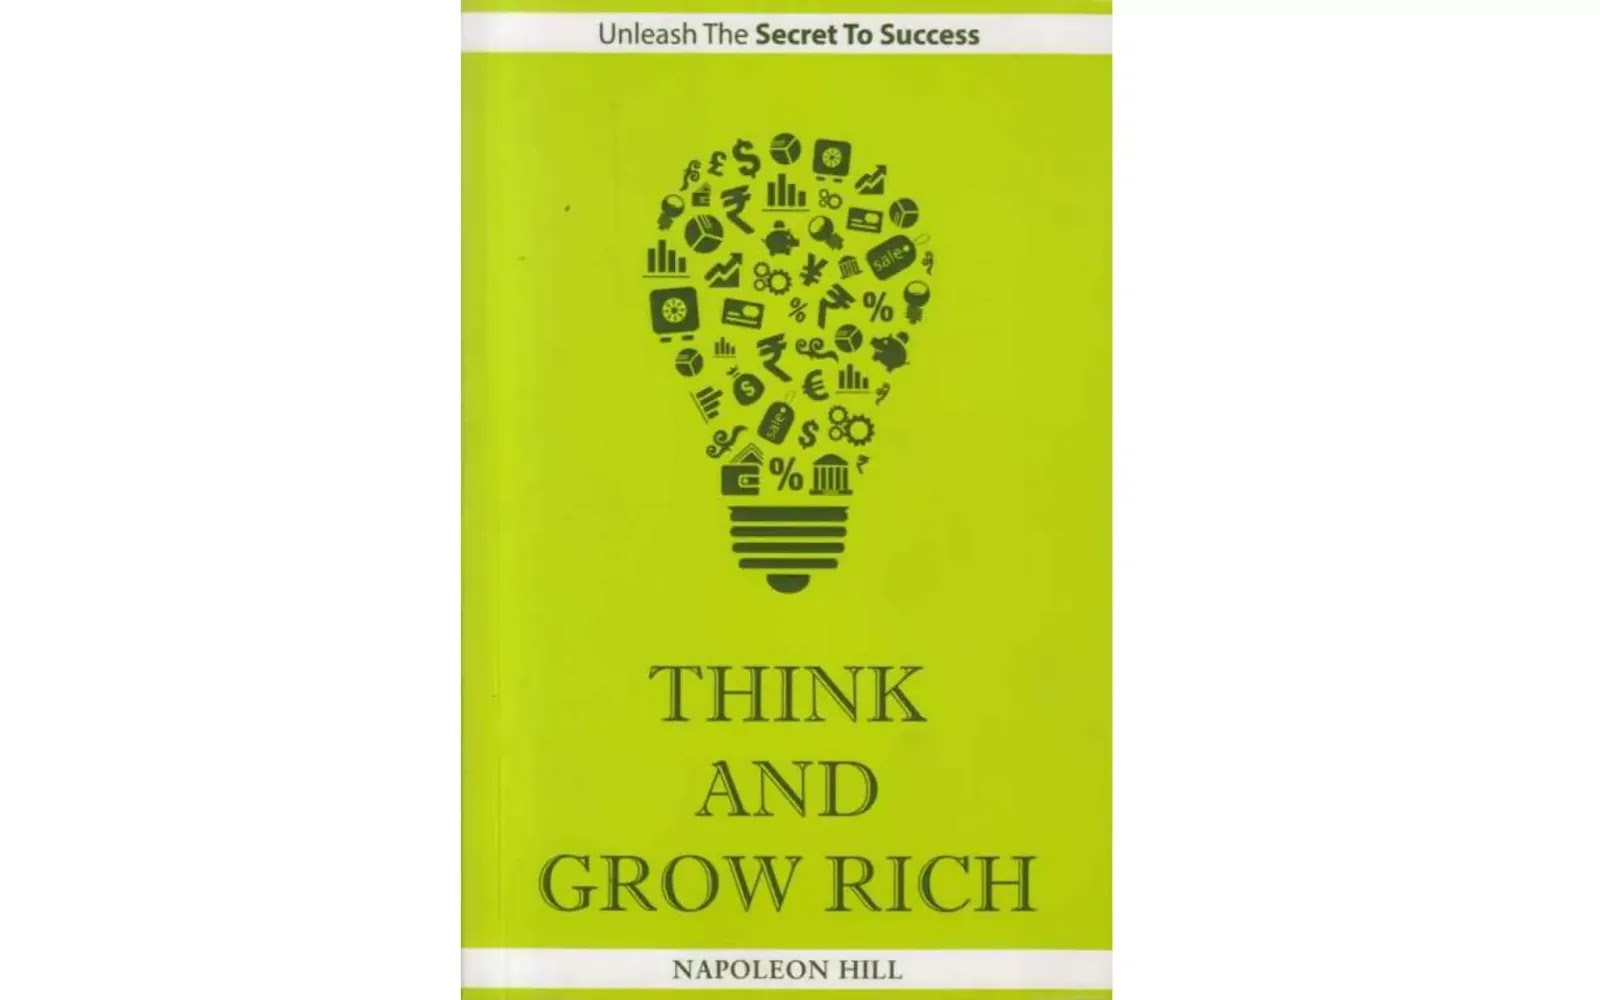 [PDF] Think And Grow Rich by Napoleon Hill Pdf Free Download